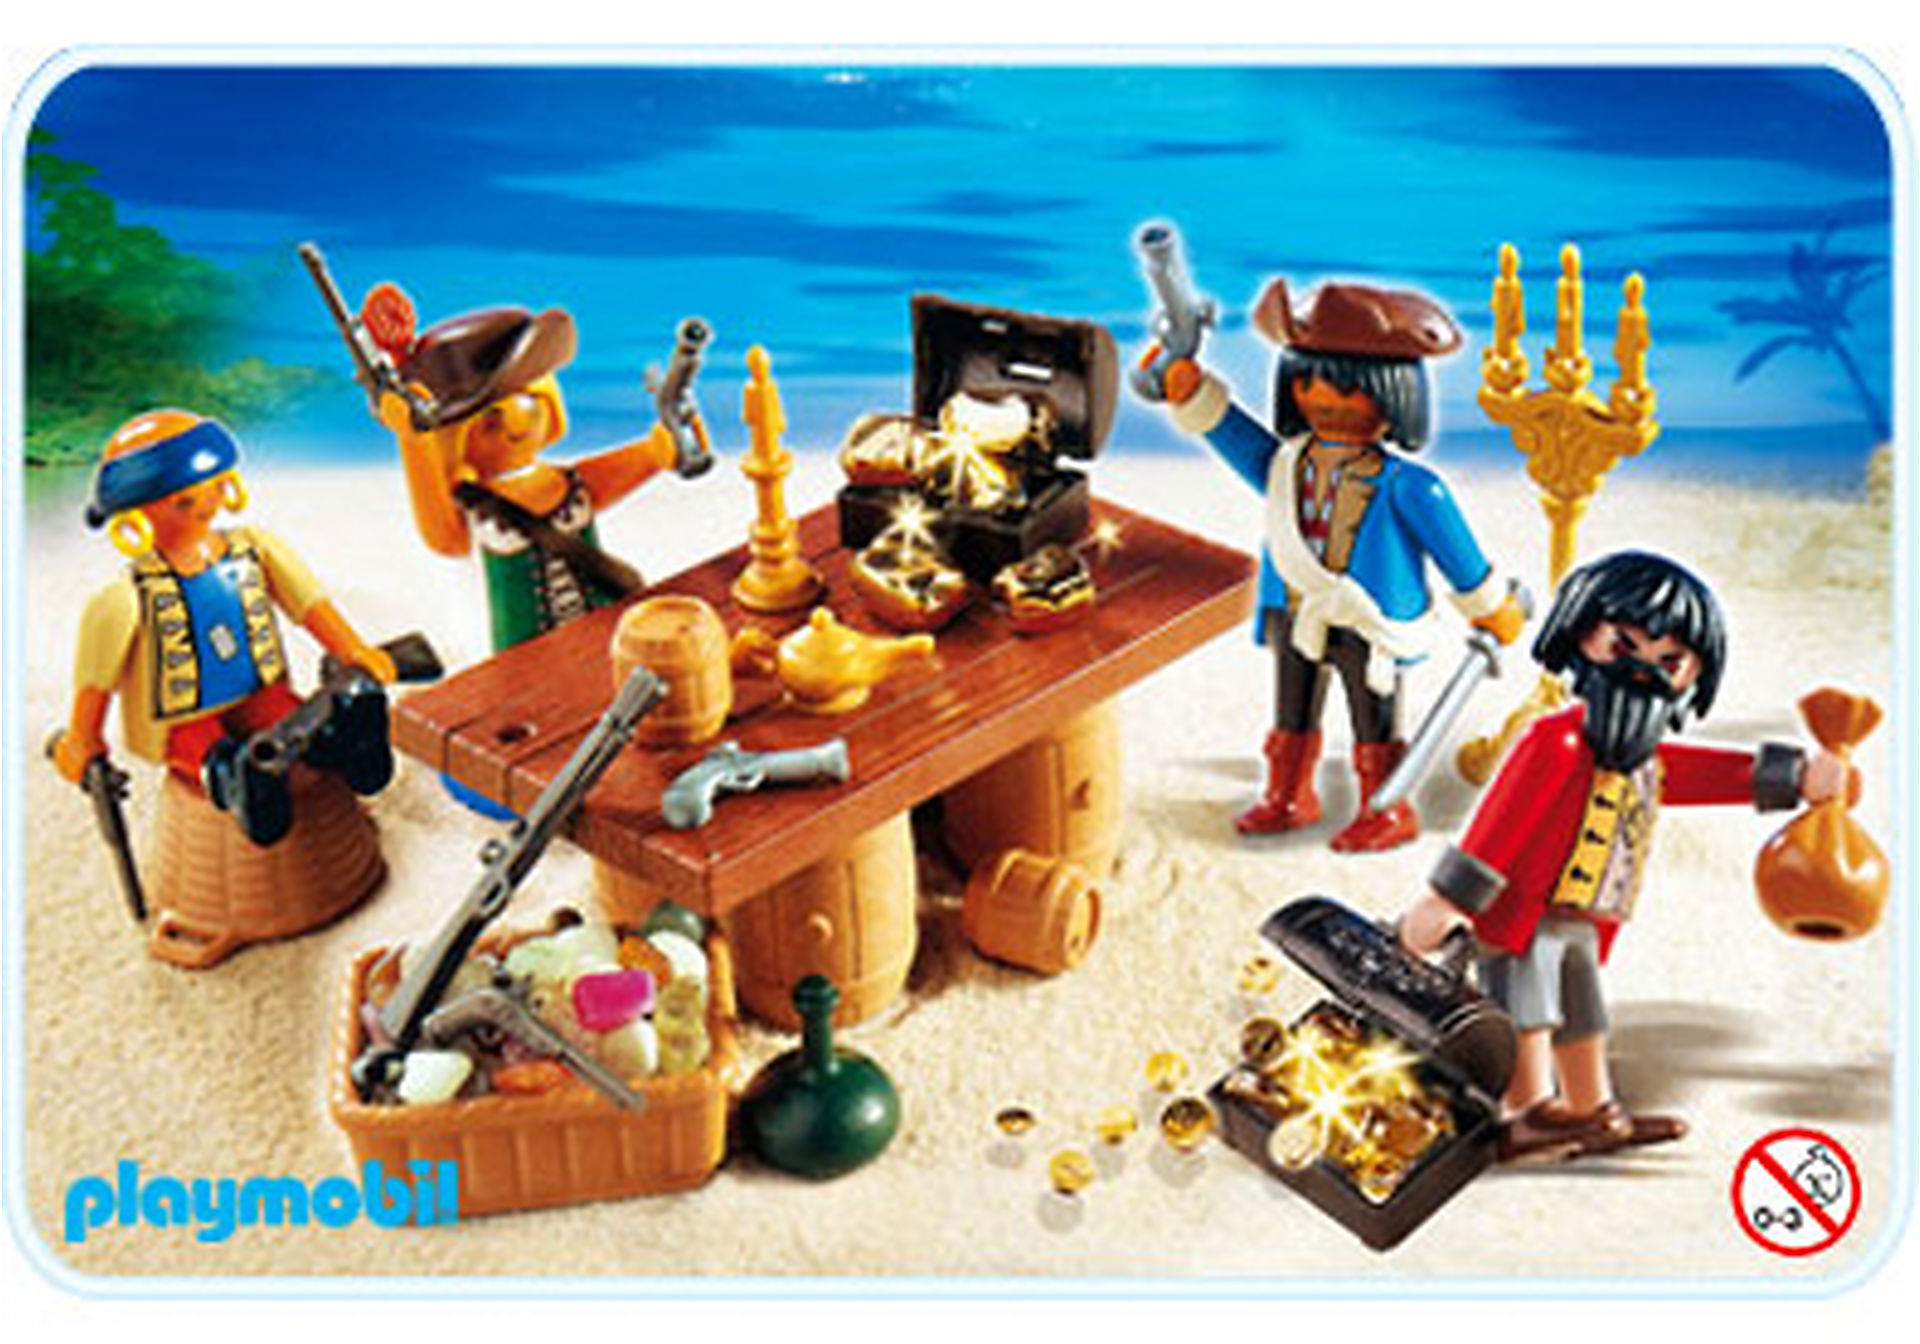 http://media.playmobil.com/i/playmobil/4292-A_product_detail/Bande de pirates et leur butin